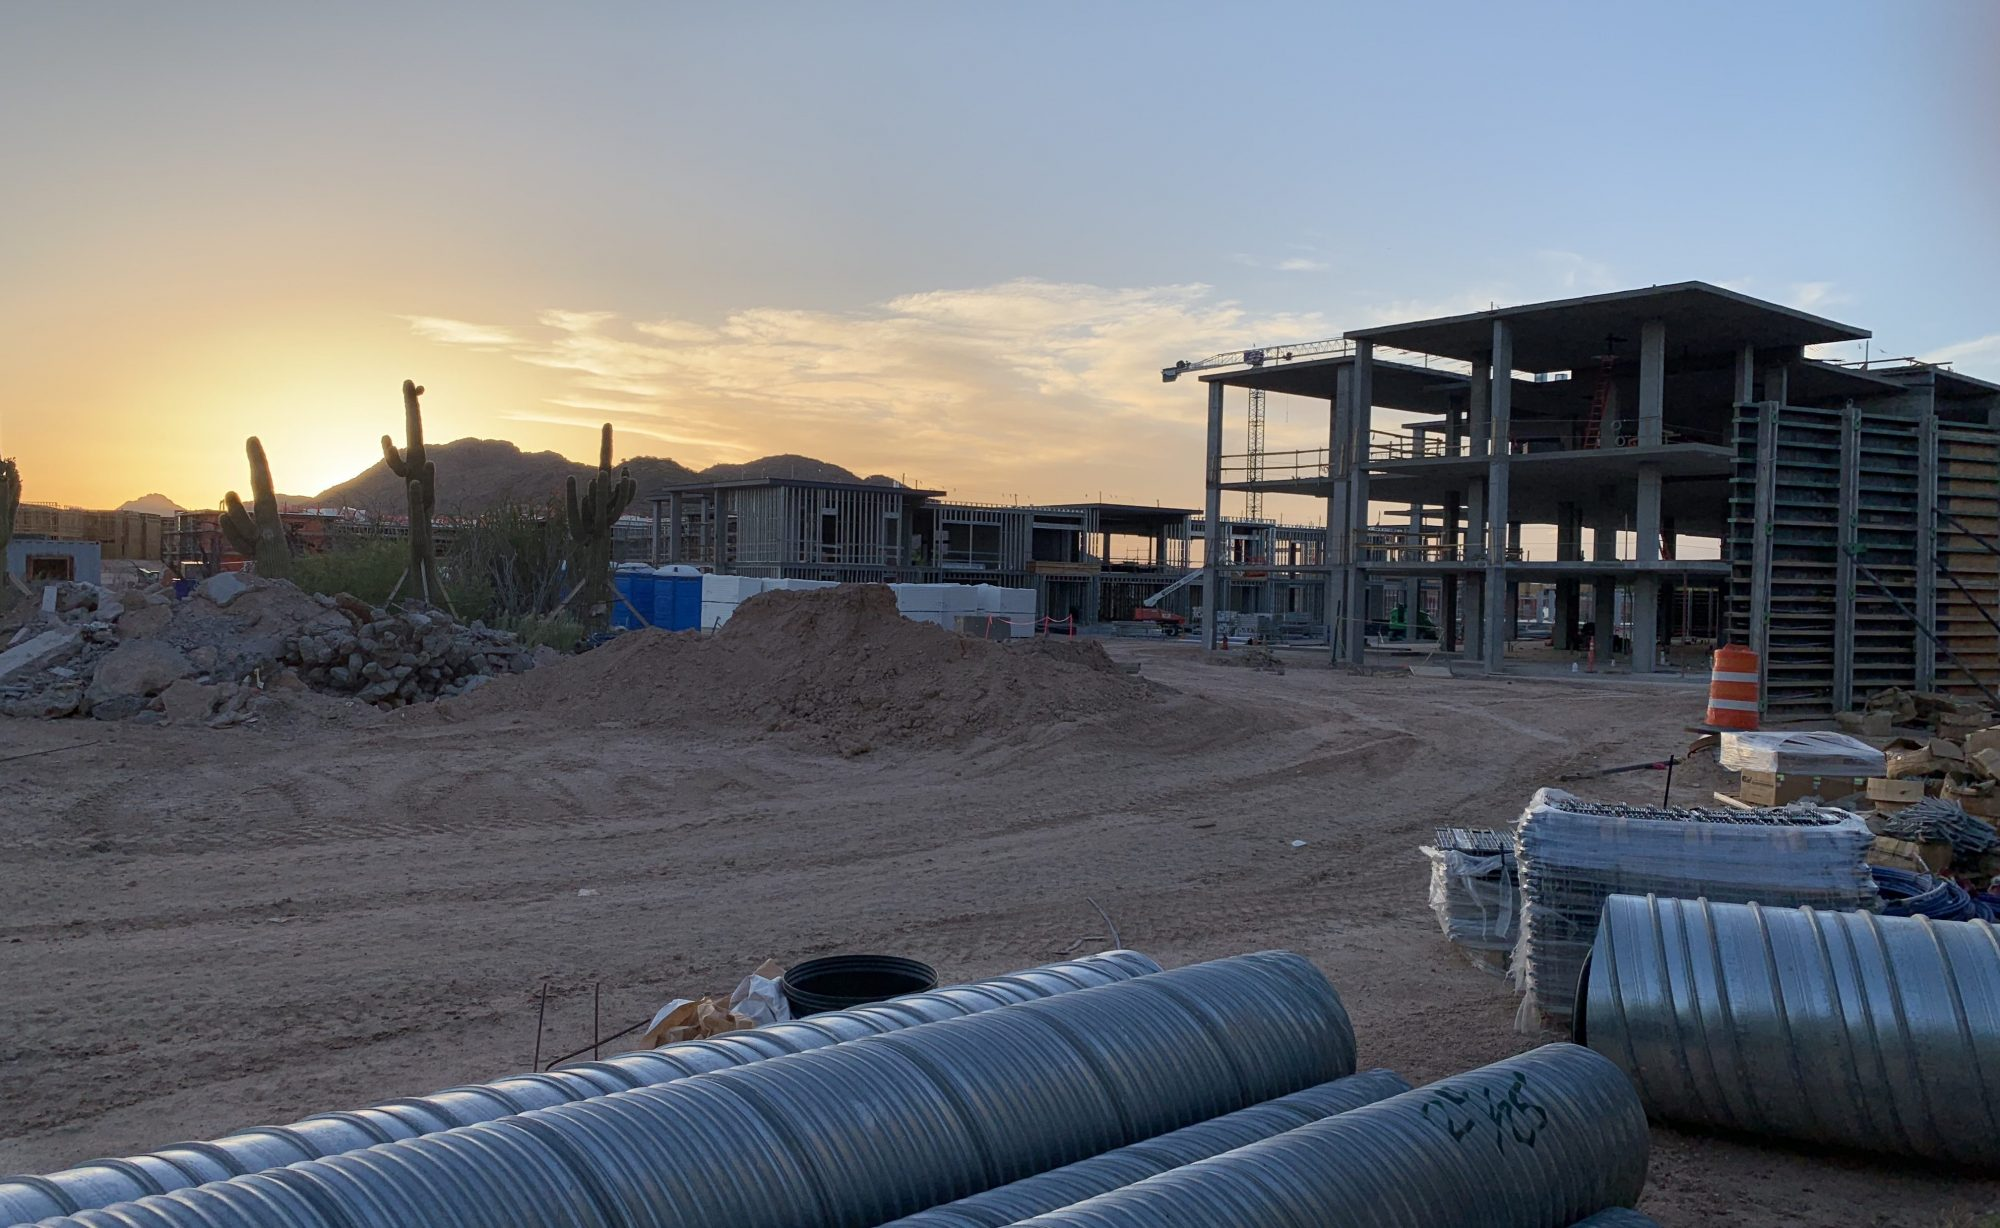 ARIZONA CONSTRUCTION and the LAW